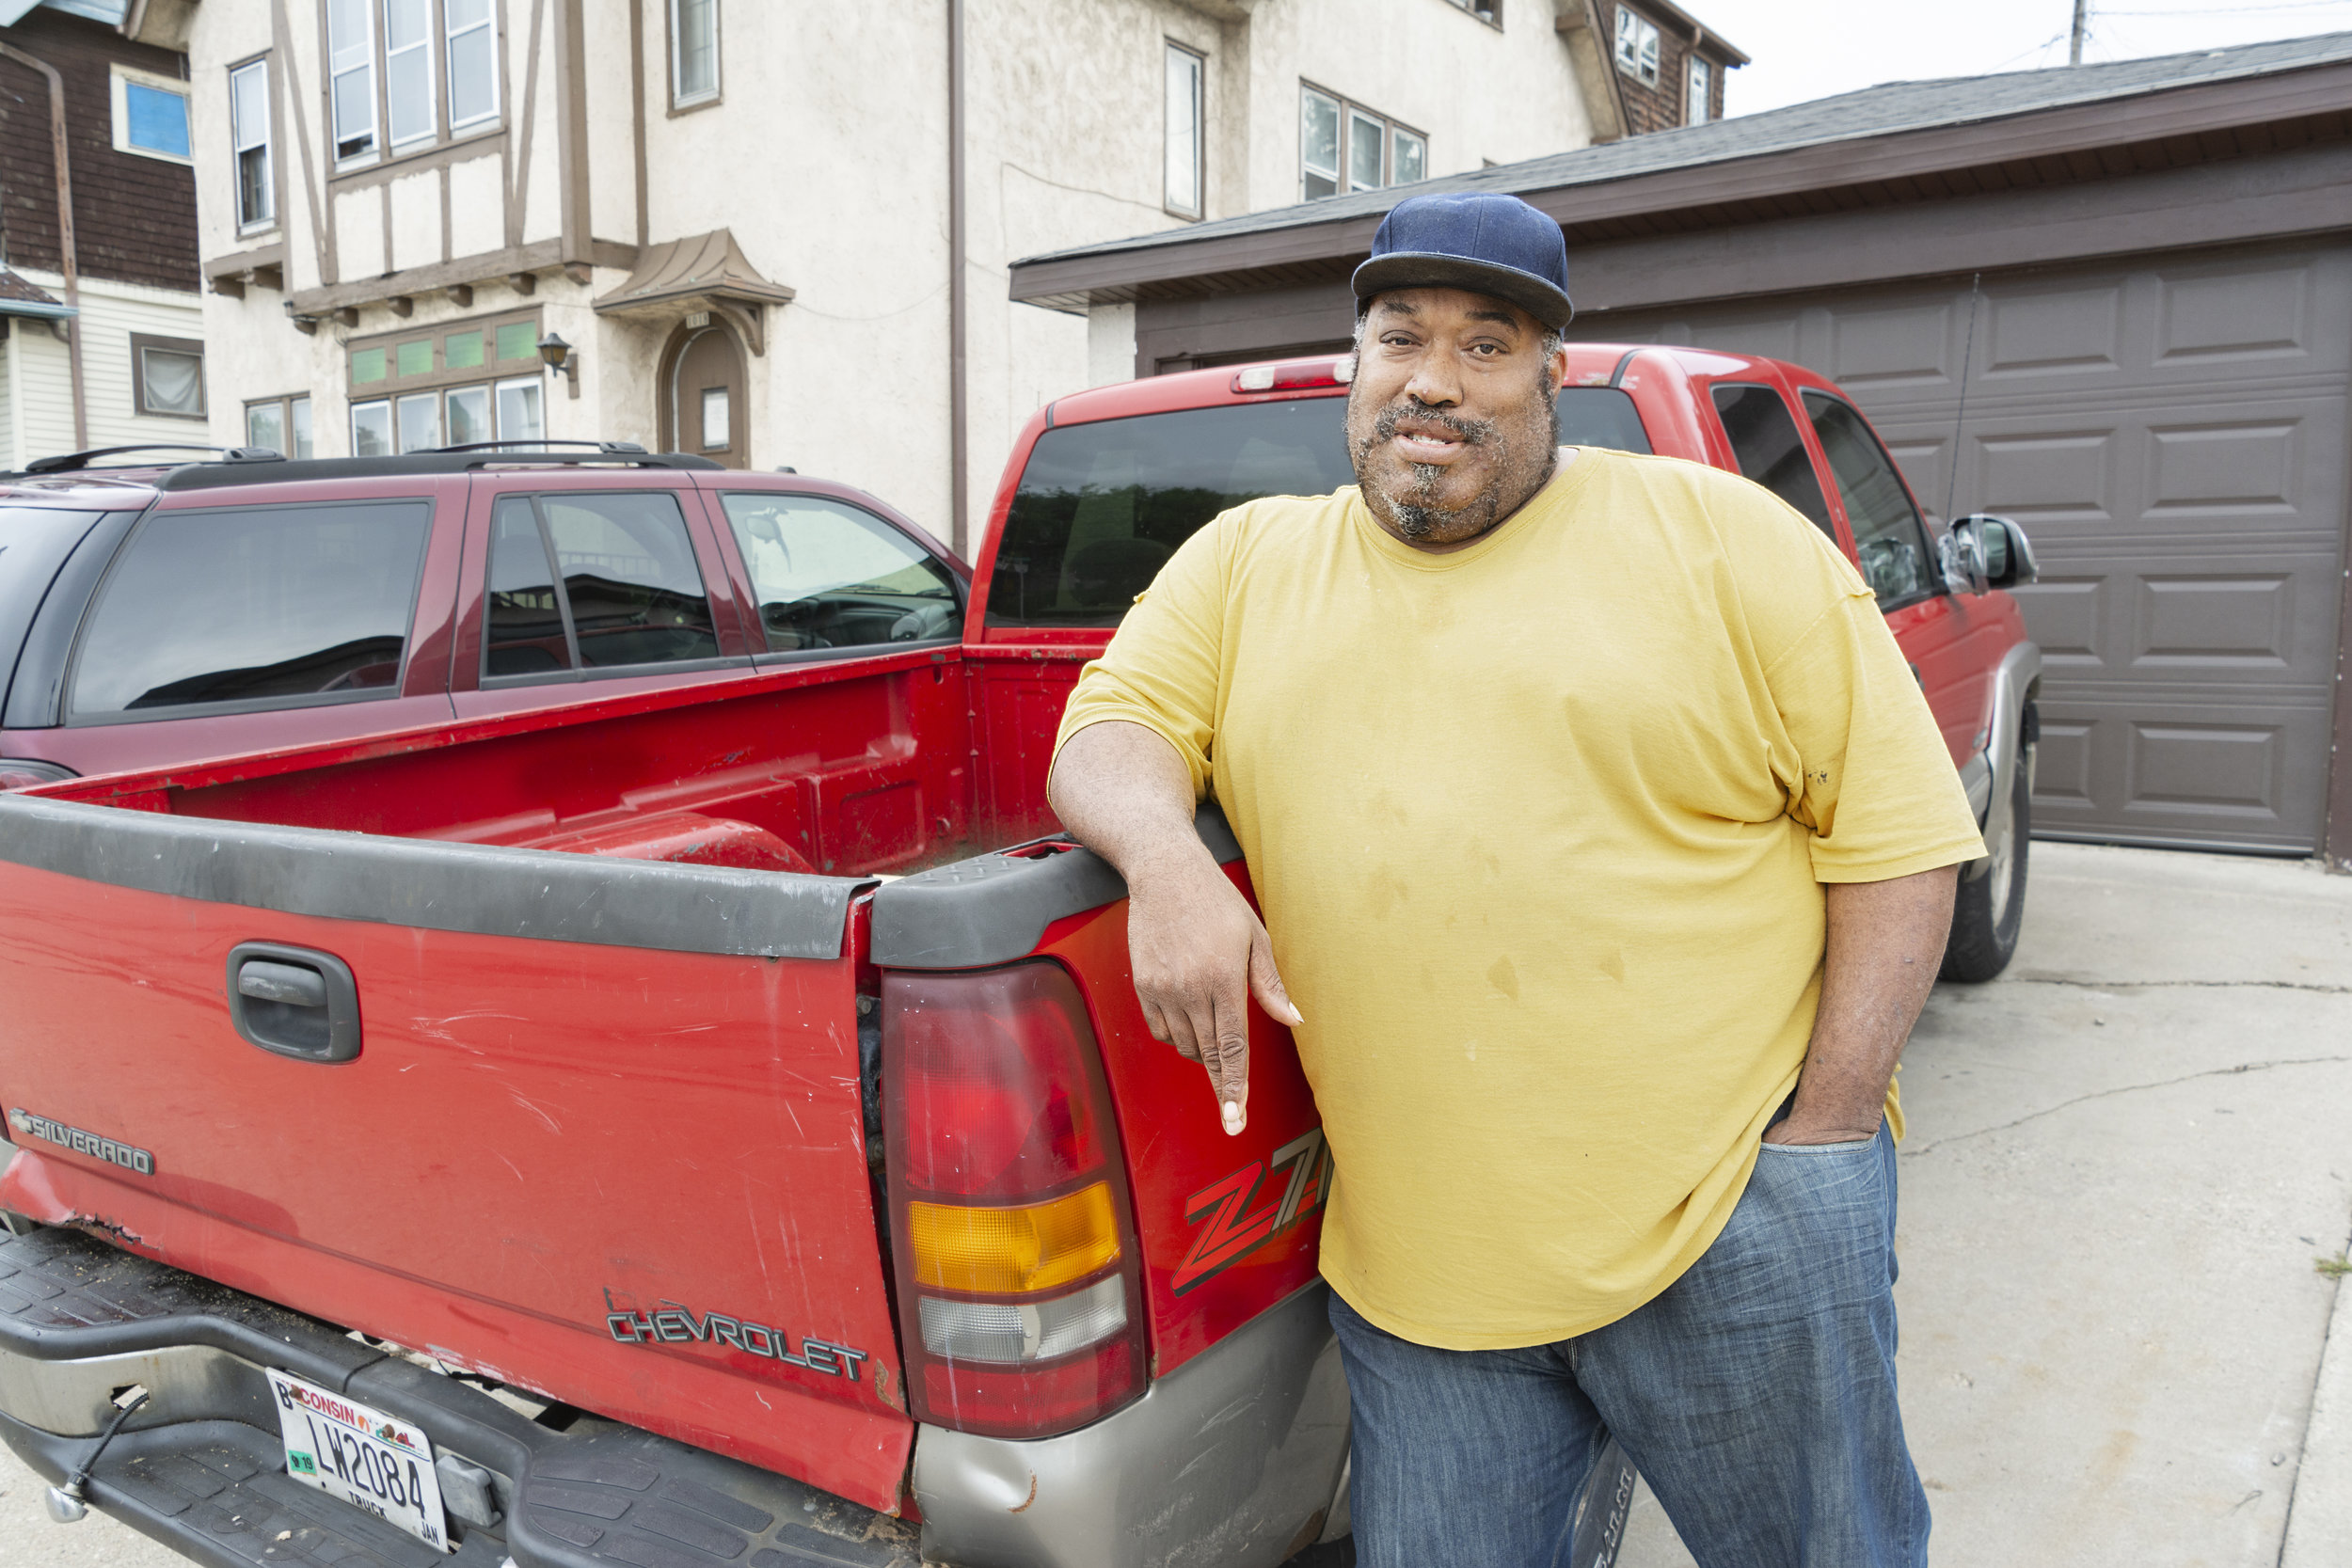 """Marvin is 51. He grew up within a neighborhood now classed as one of Wisconsin's poorest. """"The ghetto is like a slow cancer,"""" he told me. """"First you lose faith in your community, then in your church. Your dad gets killed or put in prison, or he leaves, and then you lose faith in God.""""  Marvin now lives in a Christian Fellowship House and does odd jobs to get by.  He said he never married but hopes to meet the right woman someday."""